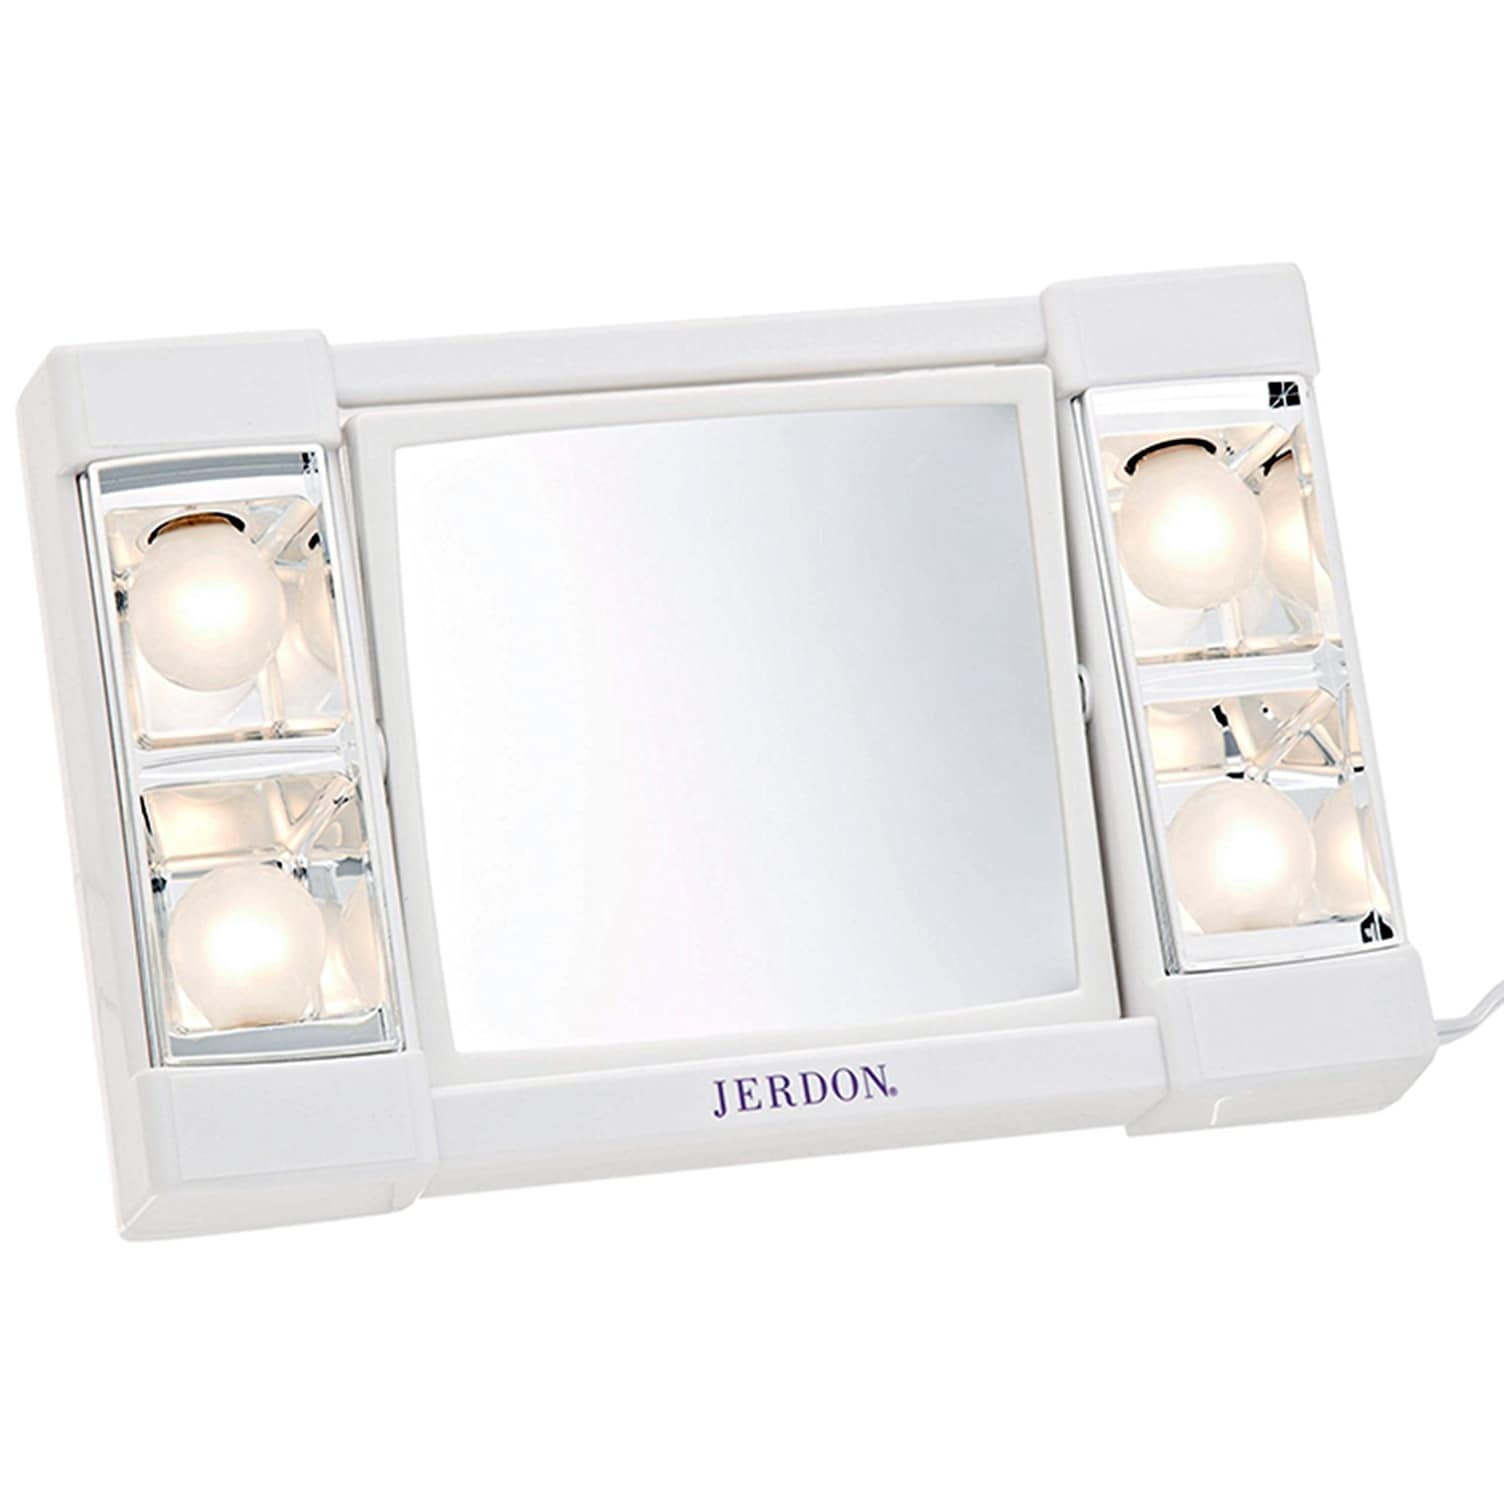 Jerdon J1010 6-Inch Portable Lighted Mirror with 3x Magni...